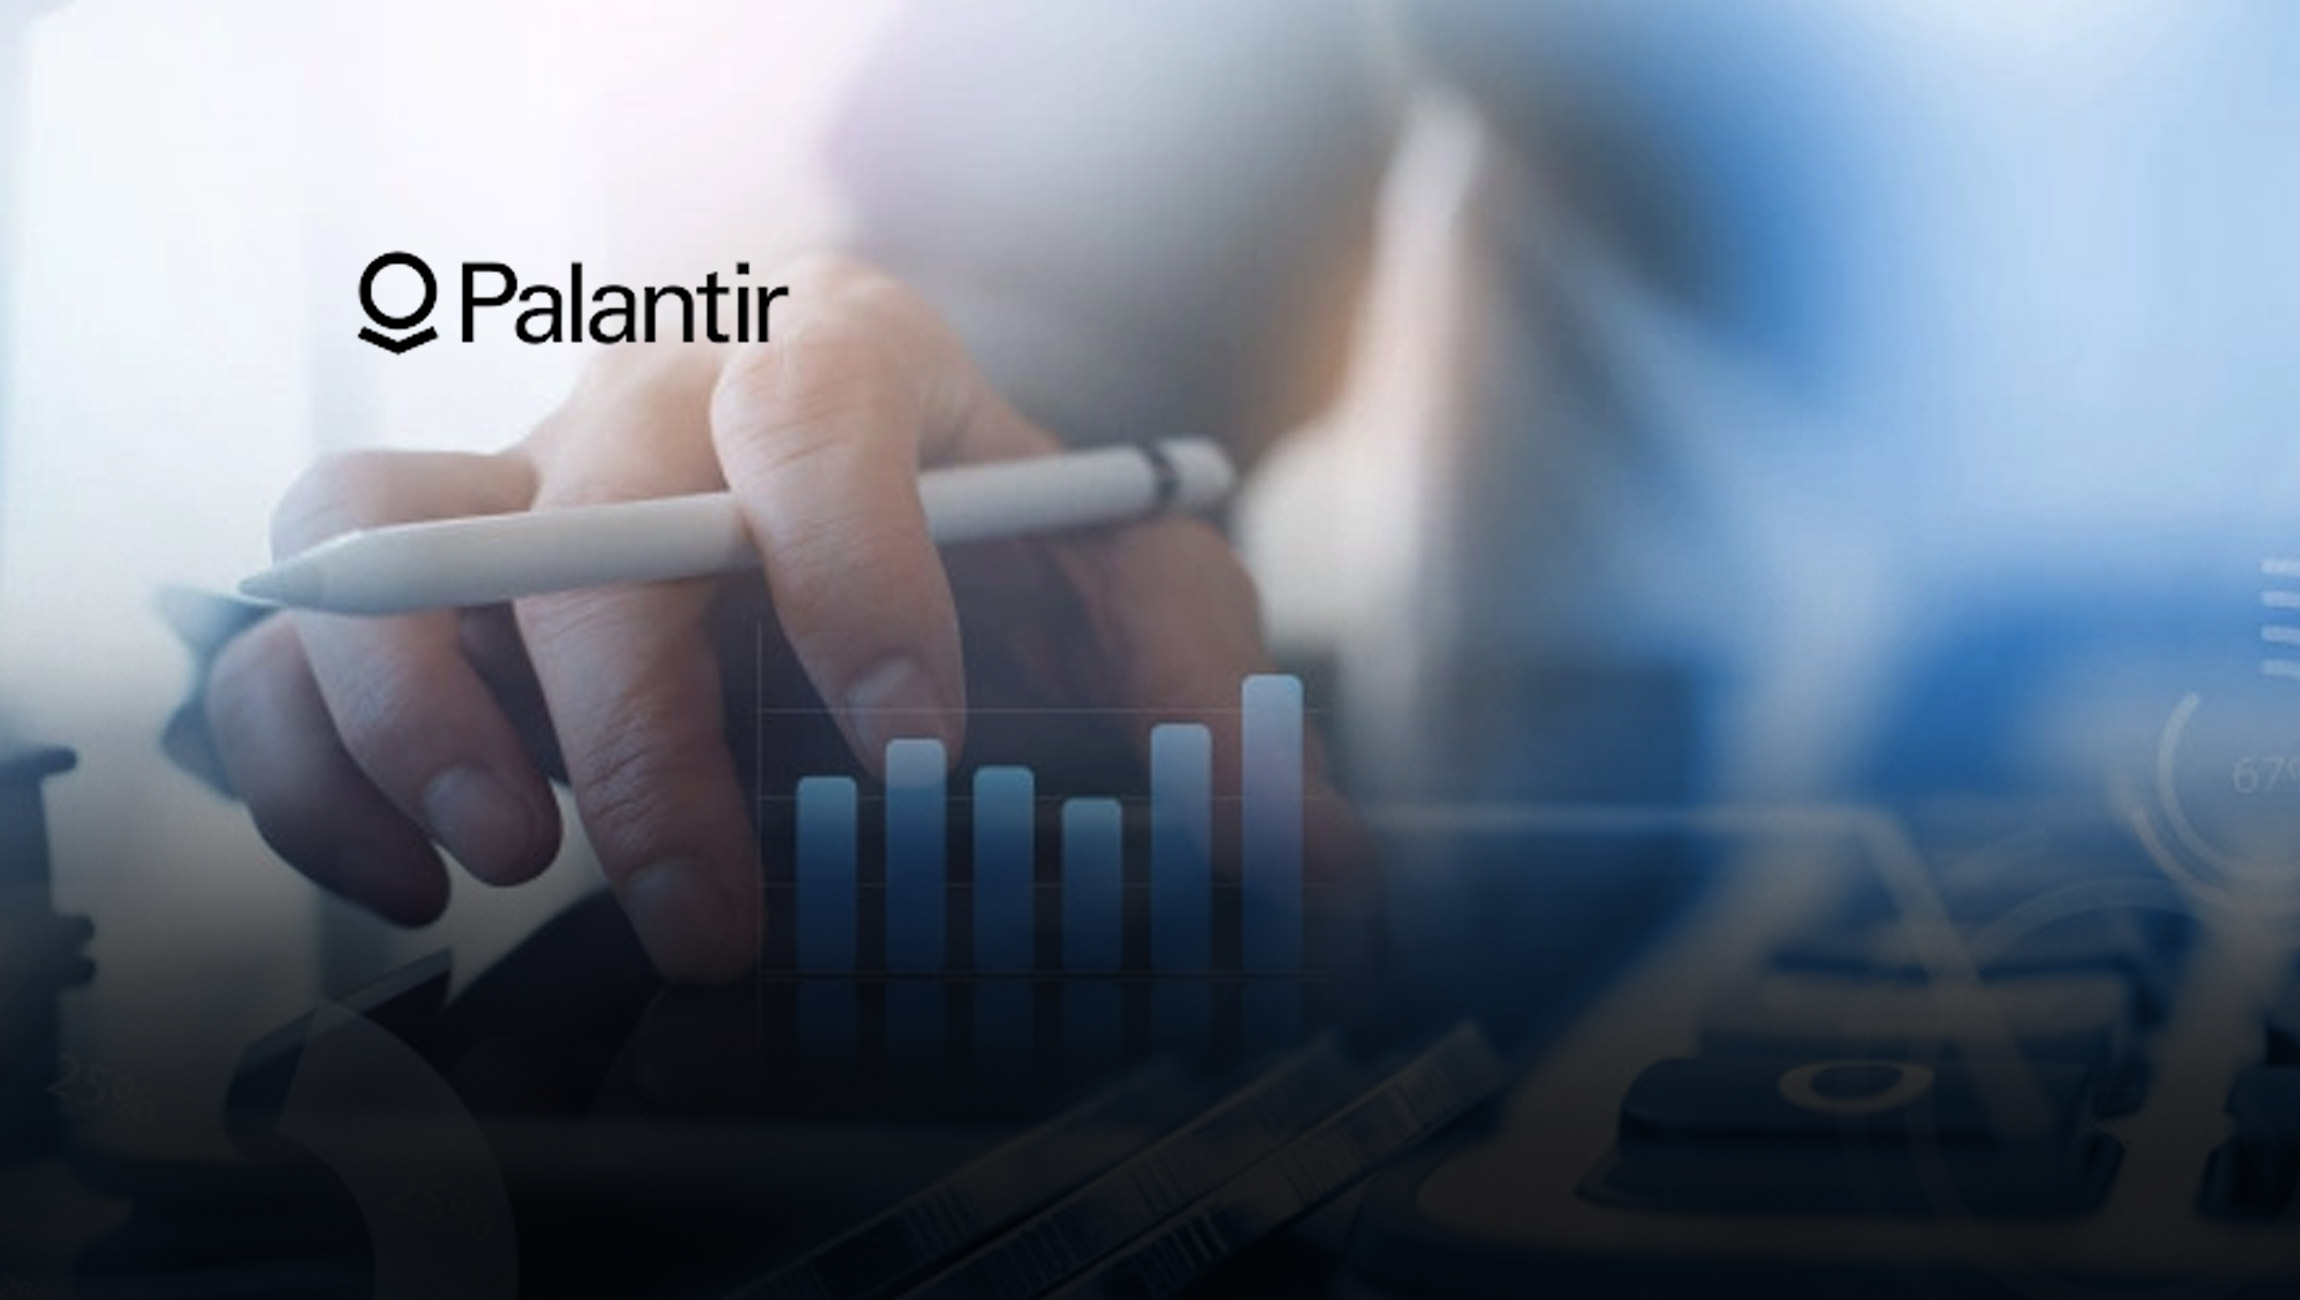 Palantir Technologies Expands Japan Business with New $22.5 Million Contract